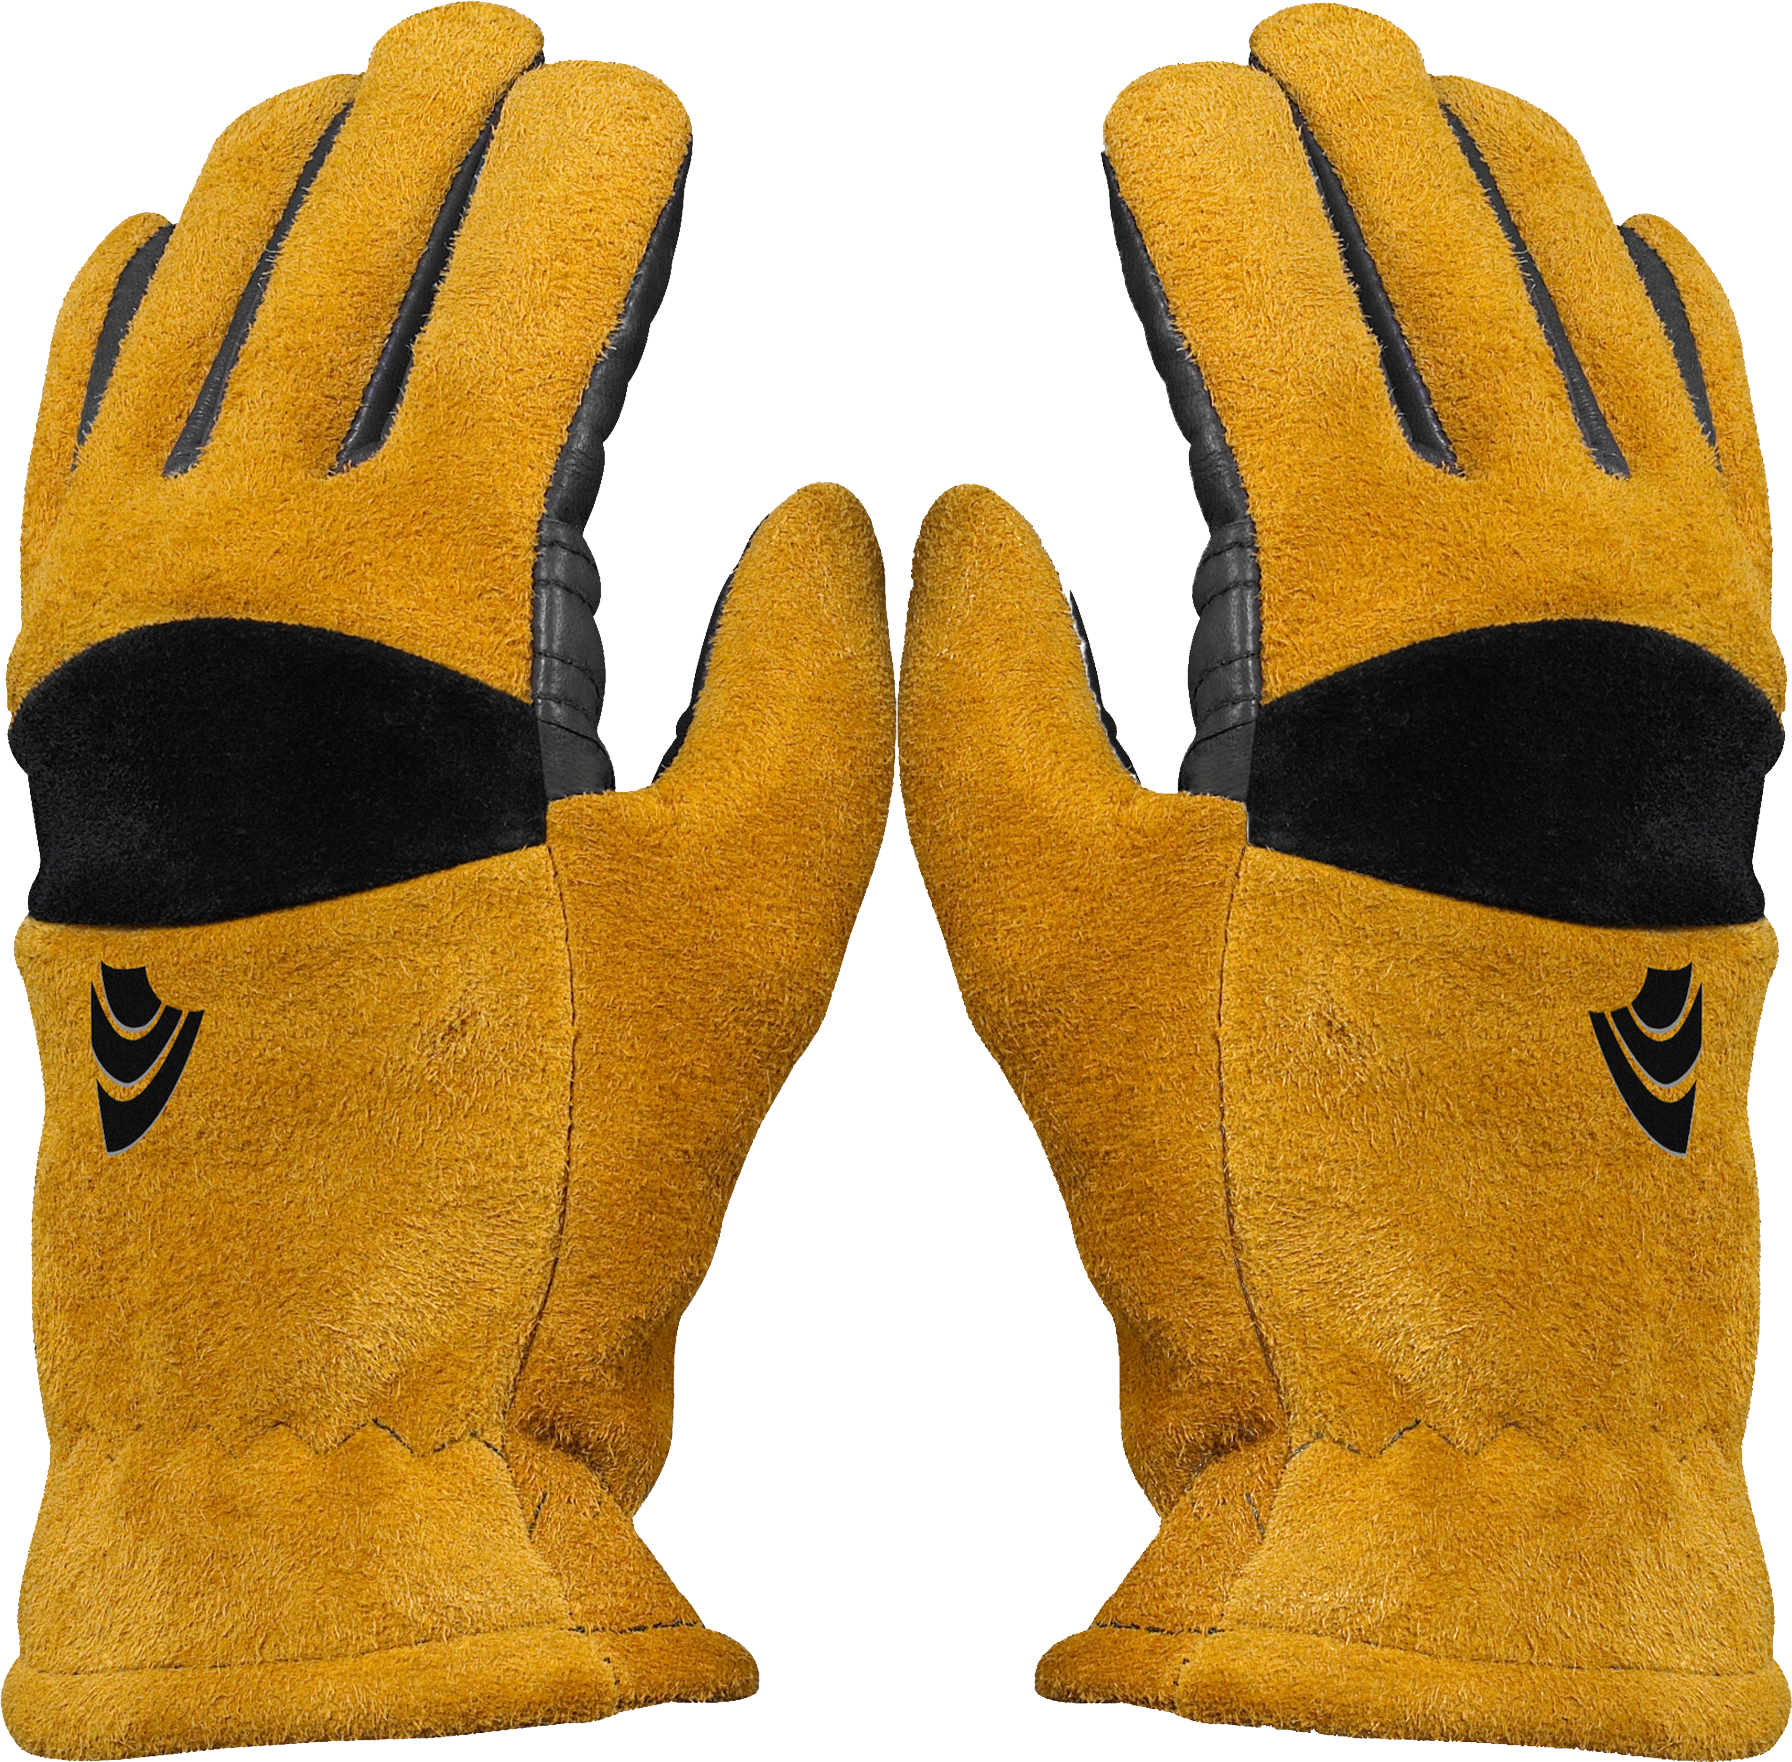 gloves clipart yellow glove